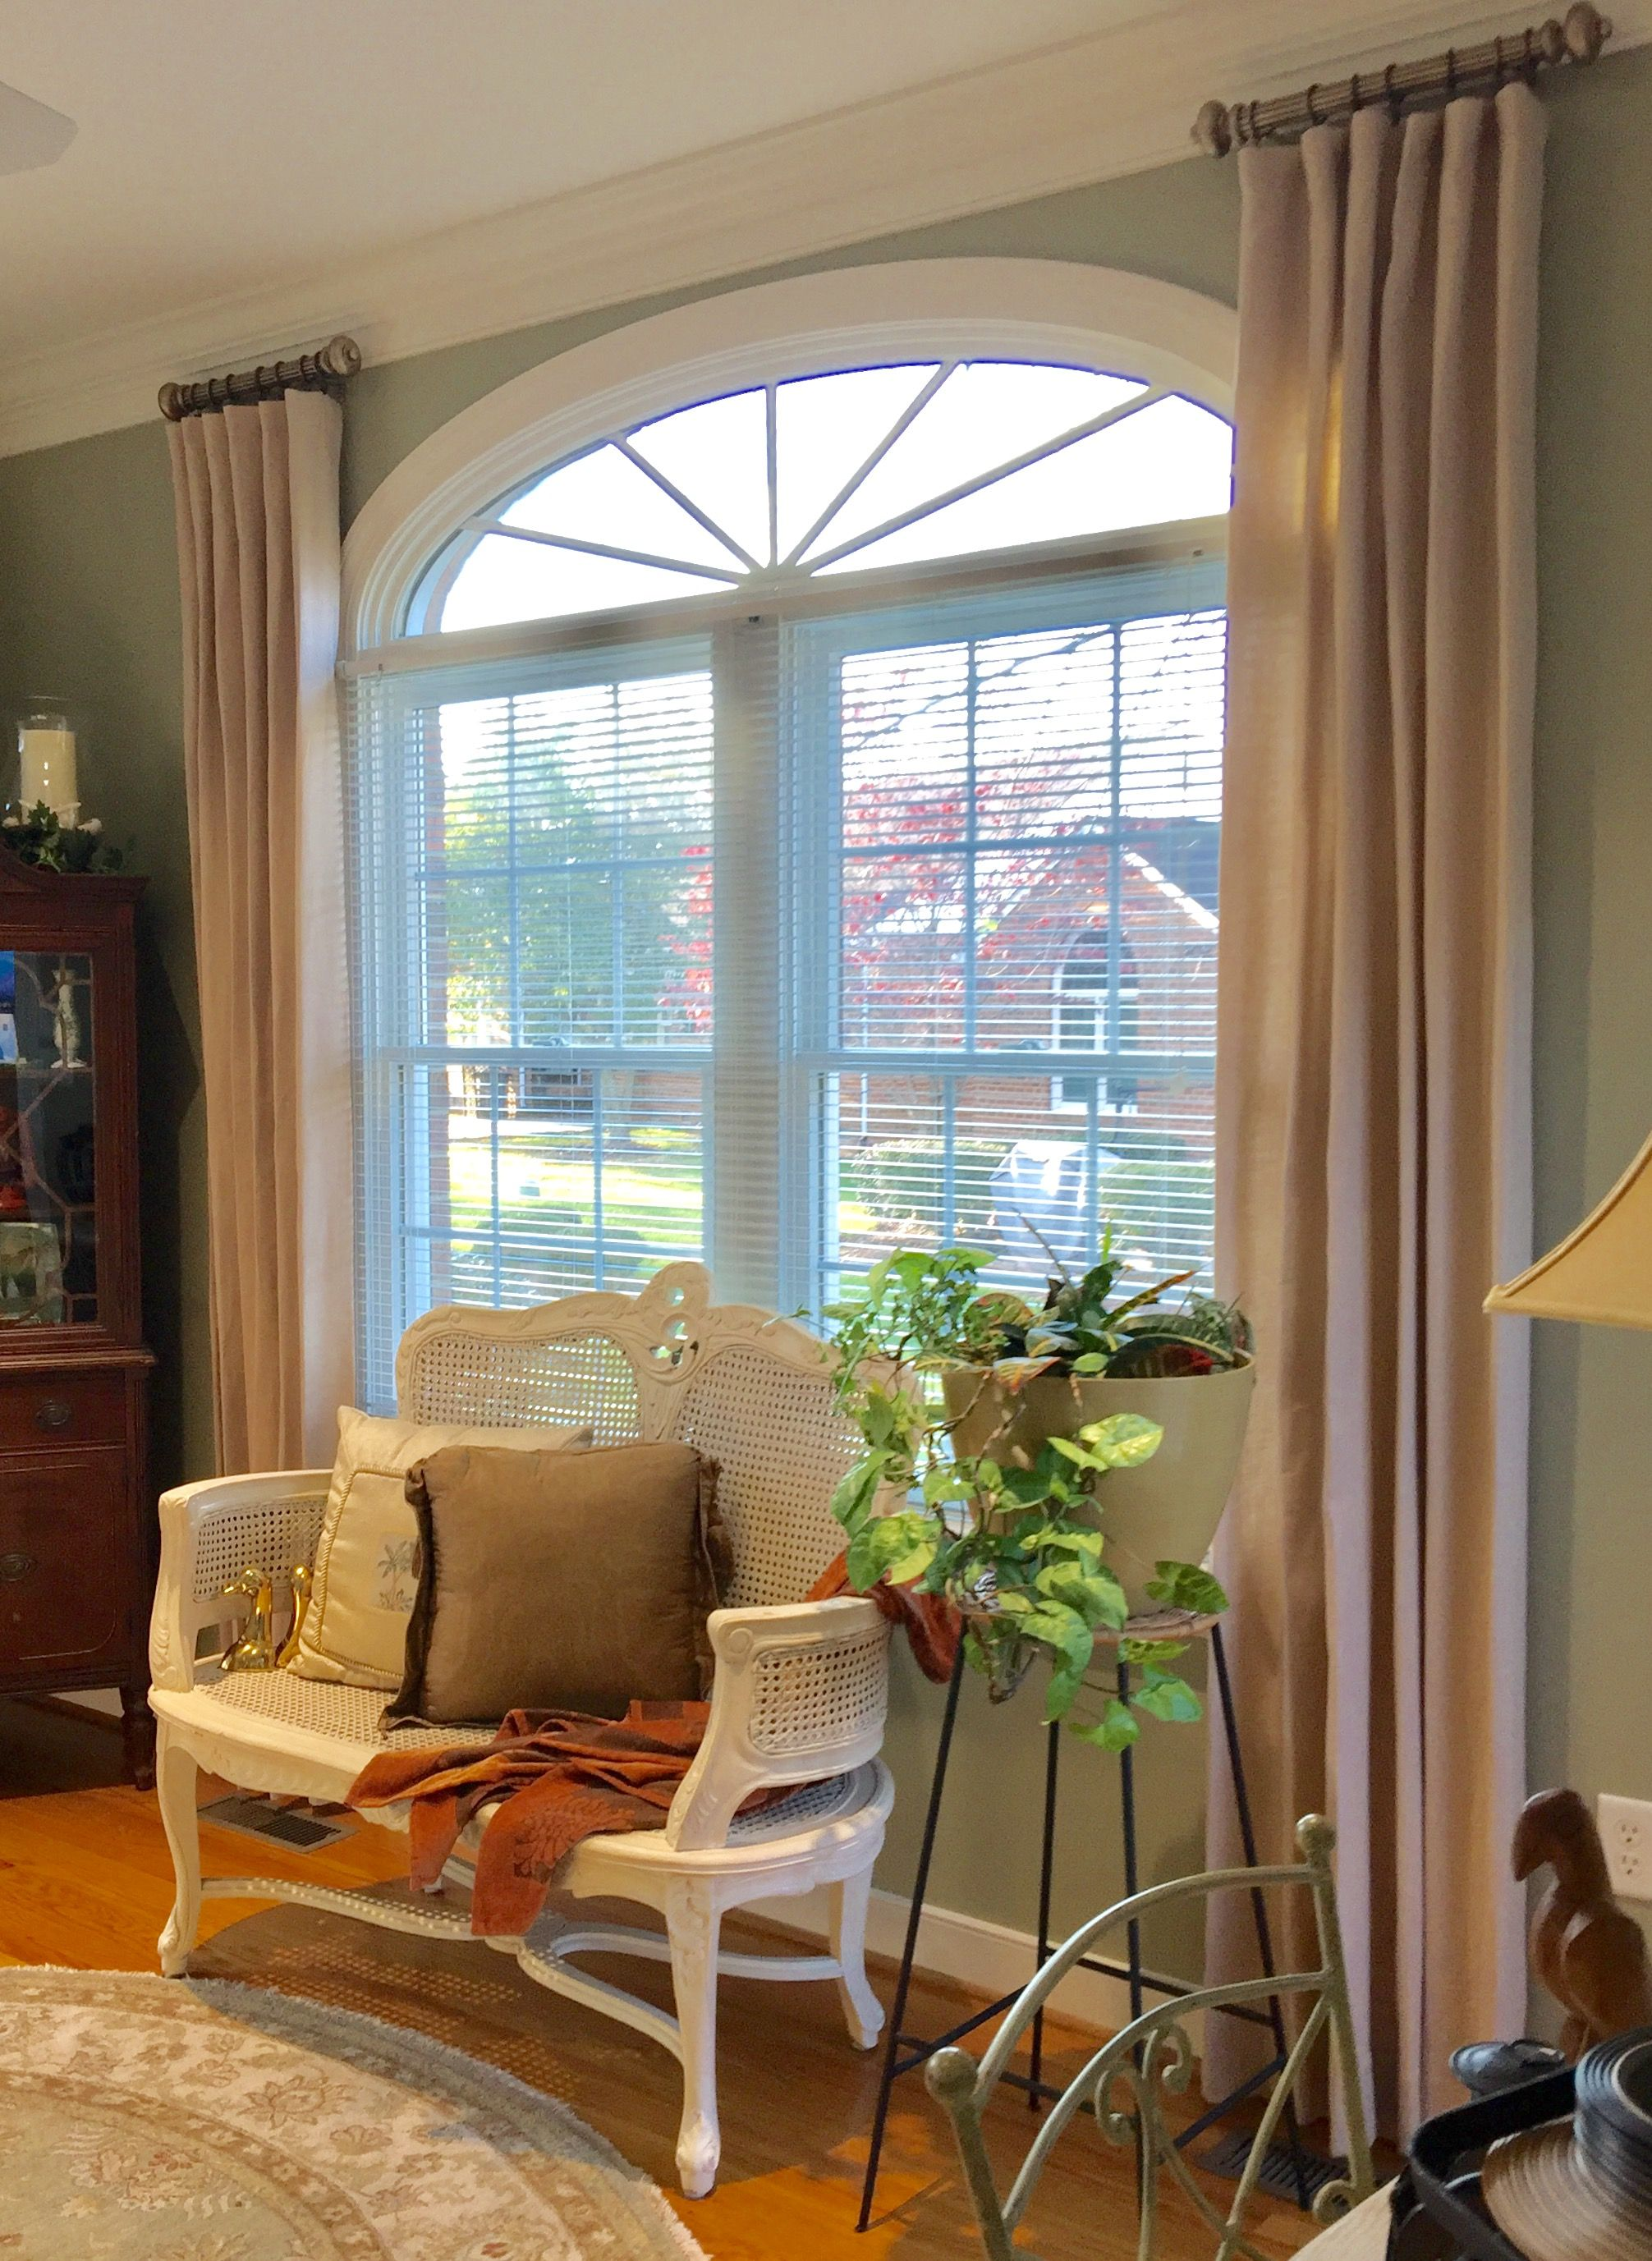 Living Room Arch Decorations: Palladian Arch Window Treatments